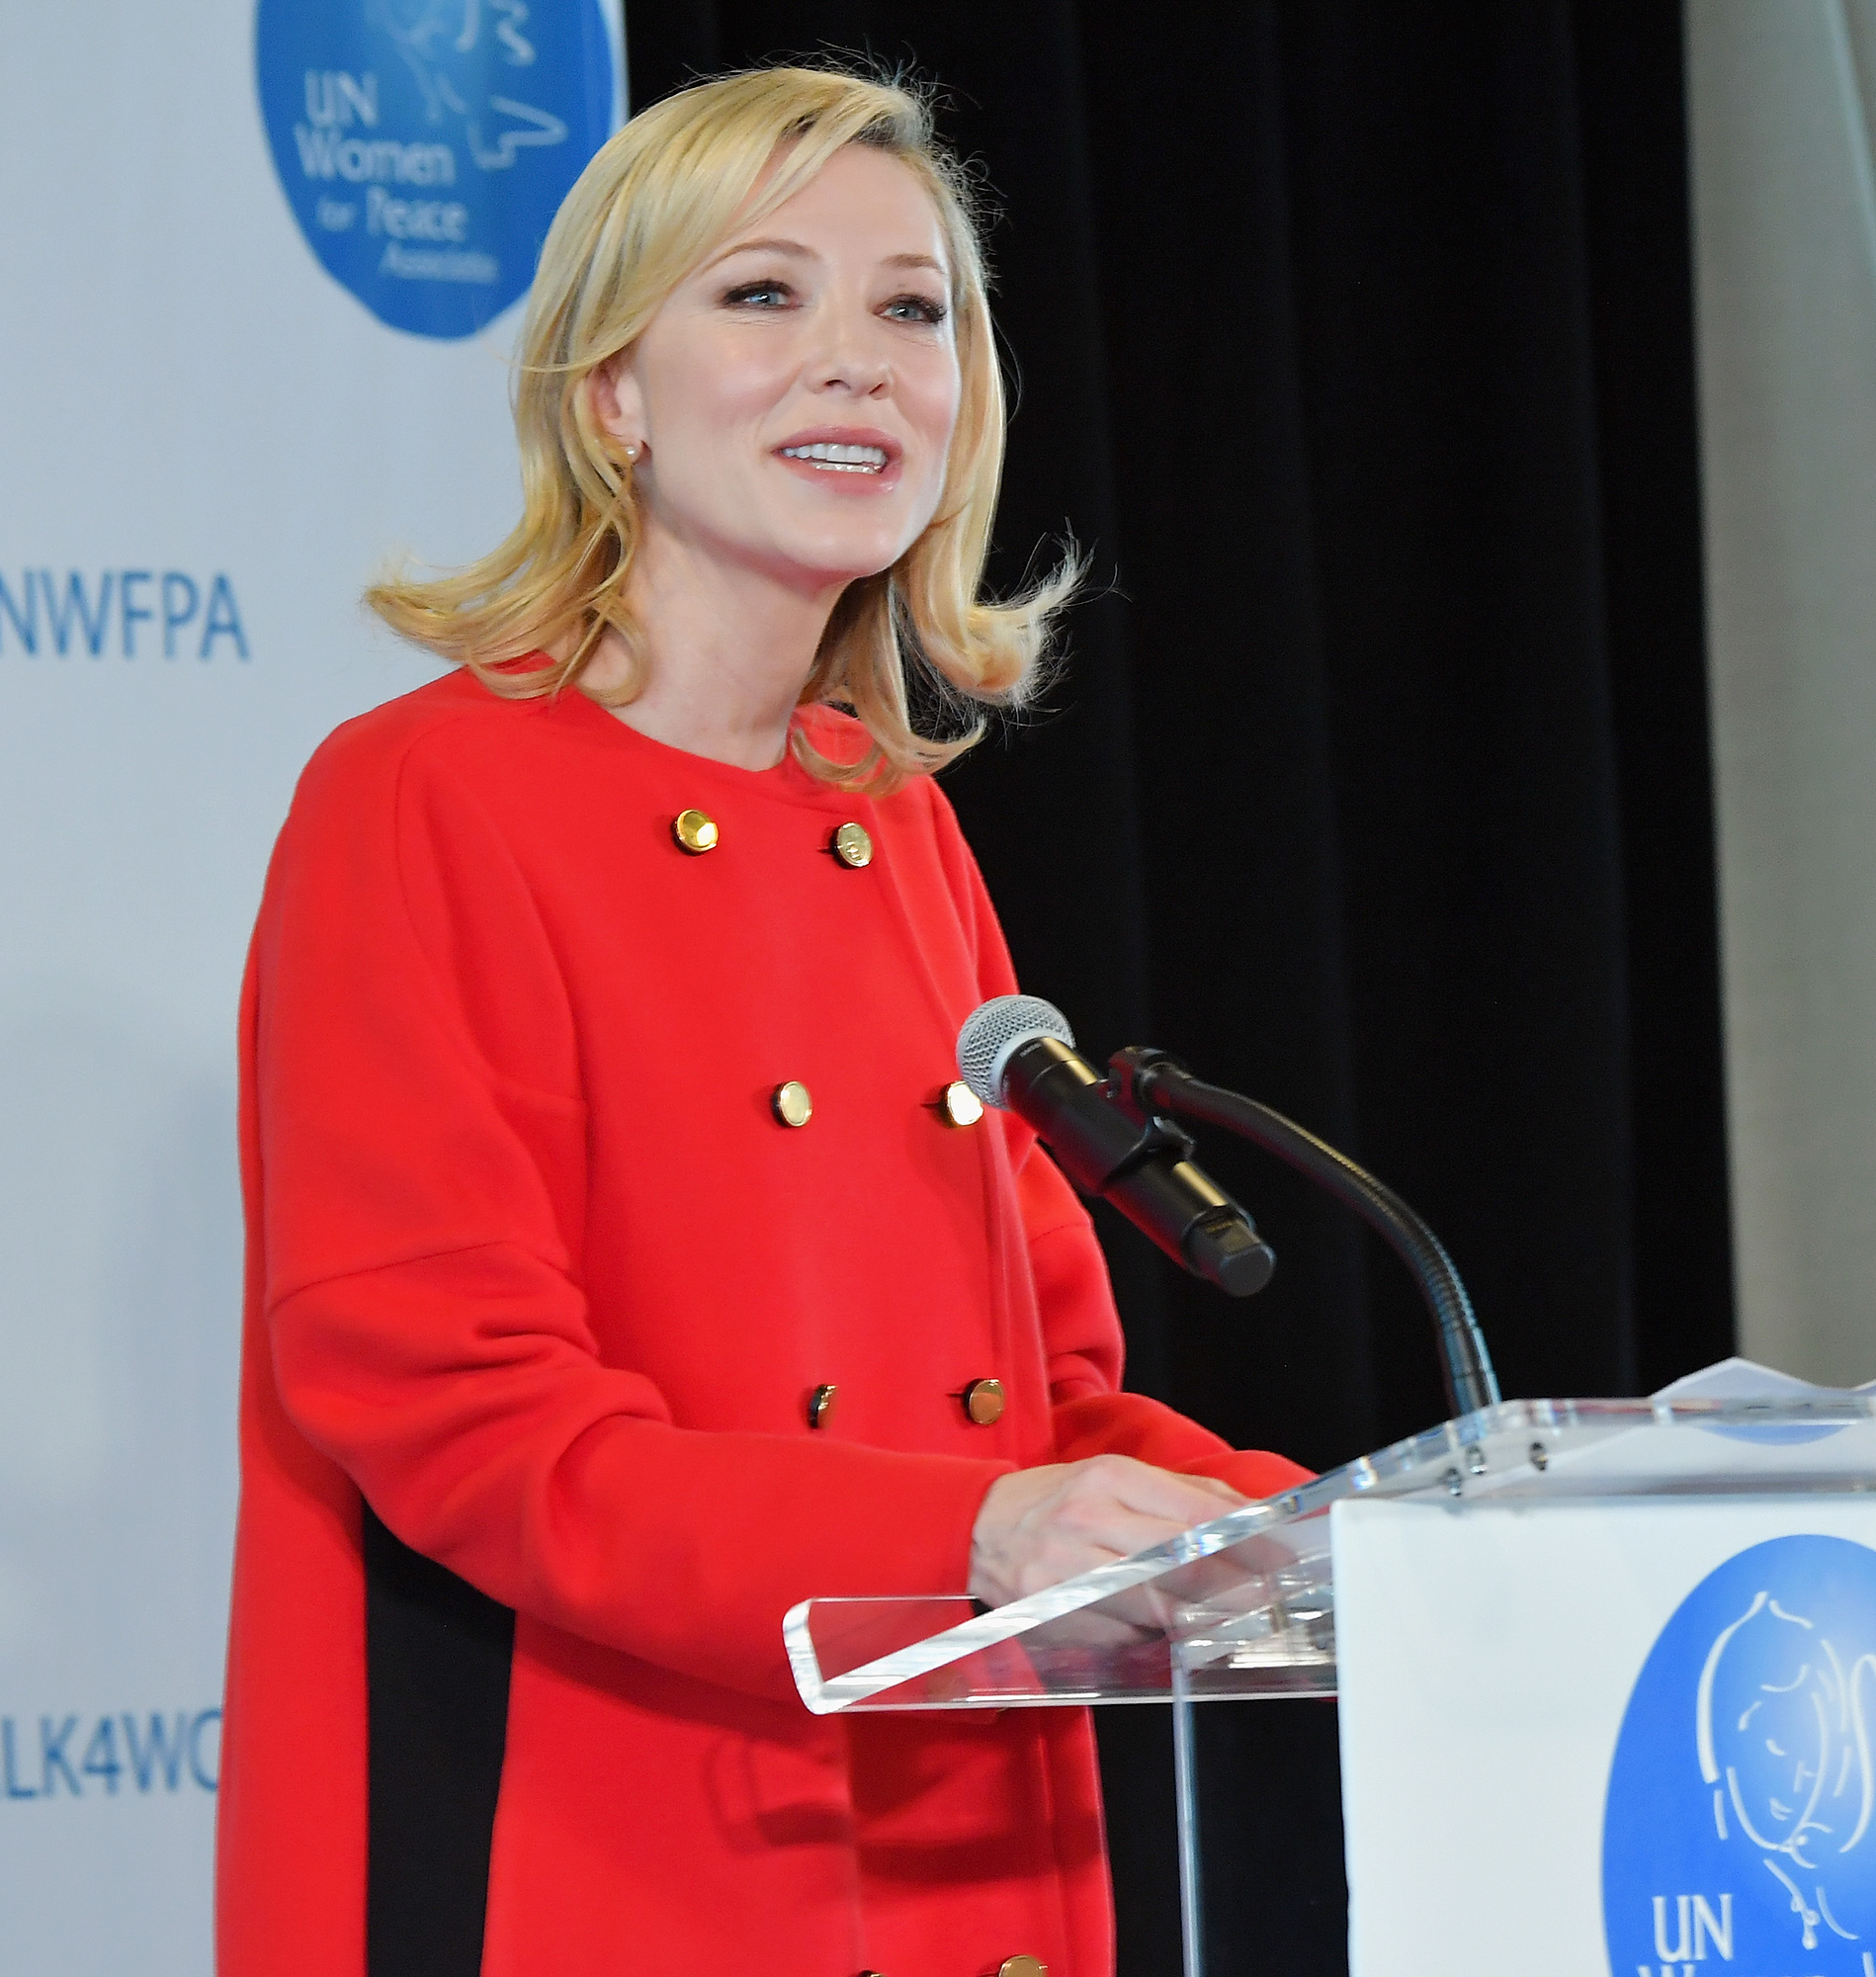 2017 UN Women for Peace Association March In March Awards Luncheon